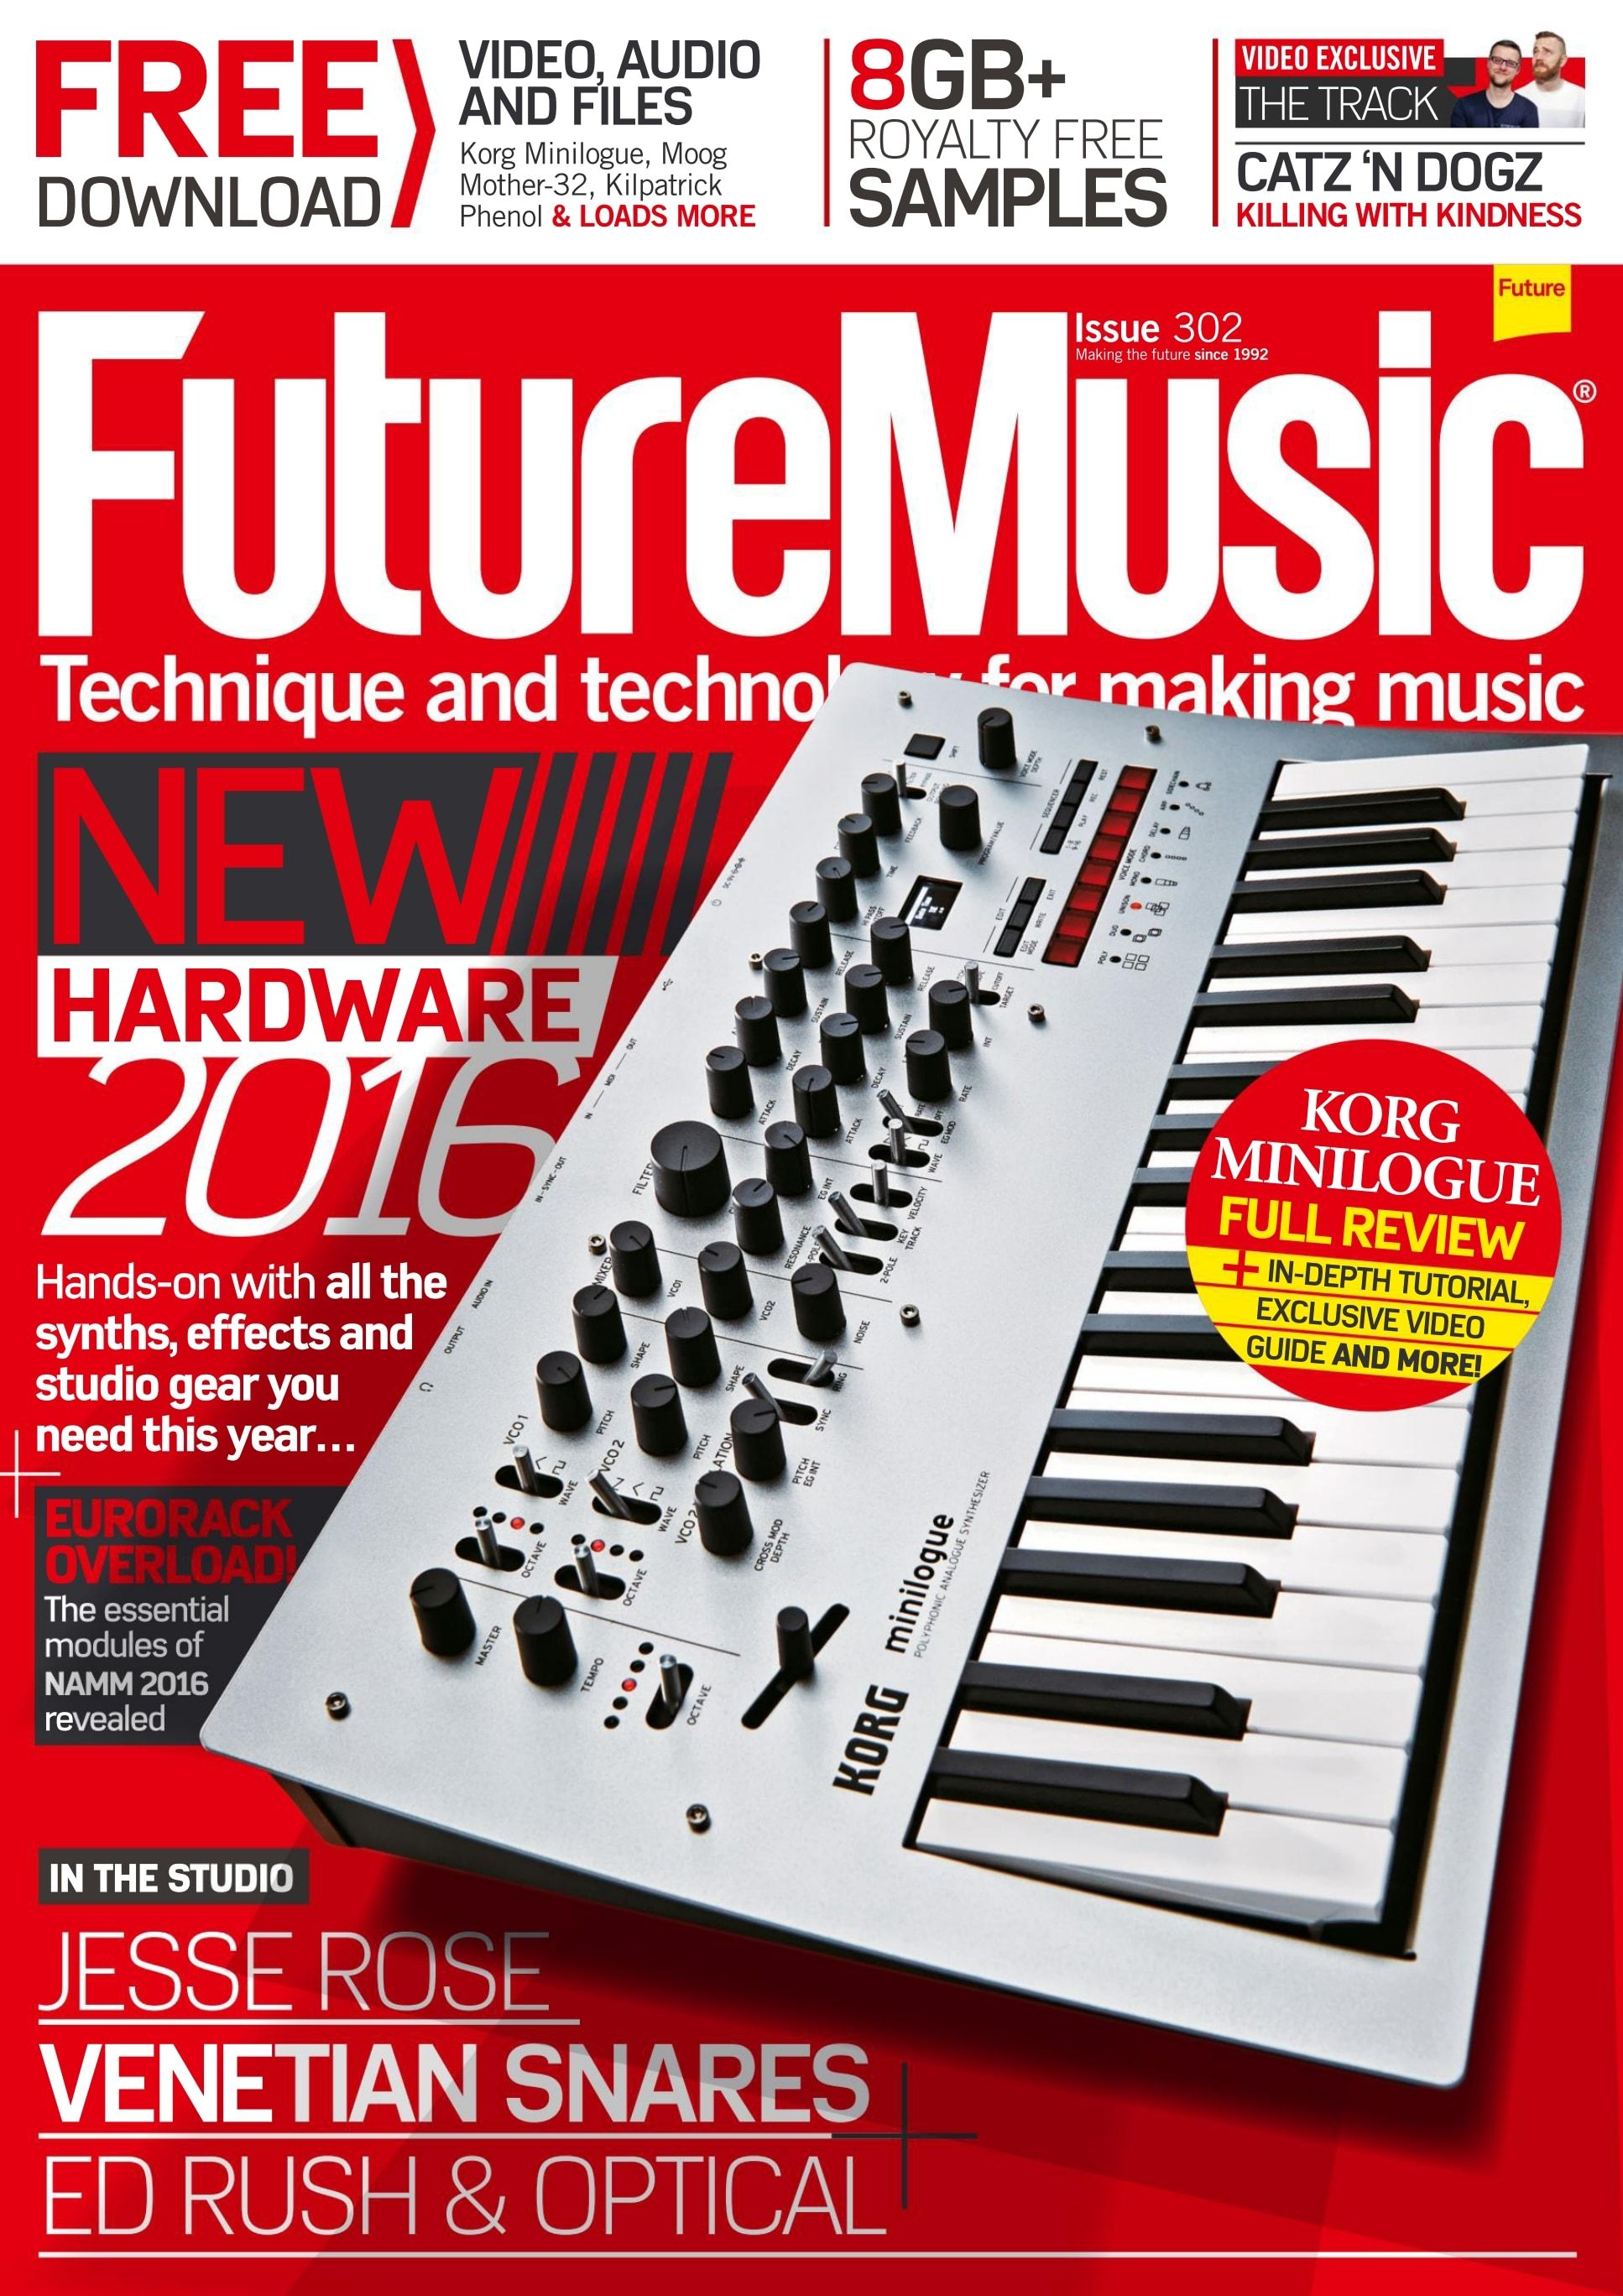 #Future #Music Magazine 303. New #hardware 2016! Hands-on with all the #synths, #effects and #studio gear you need this year...